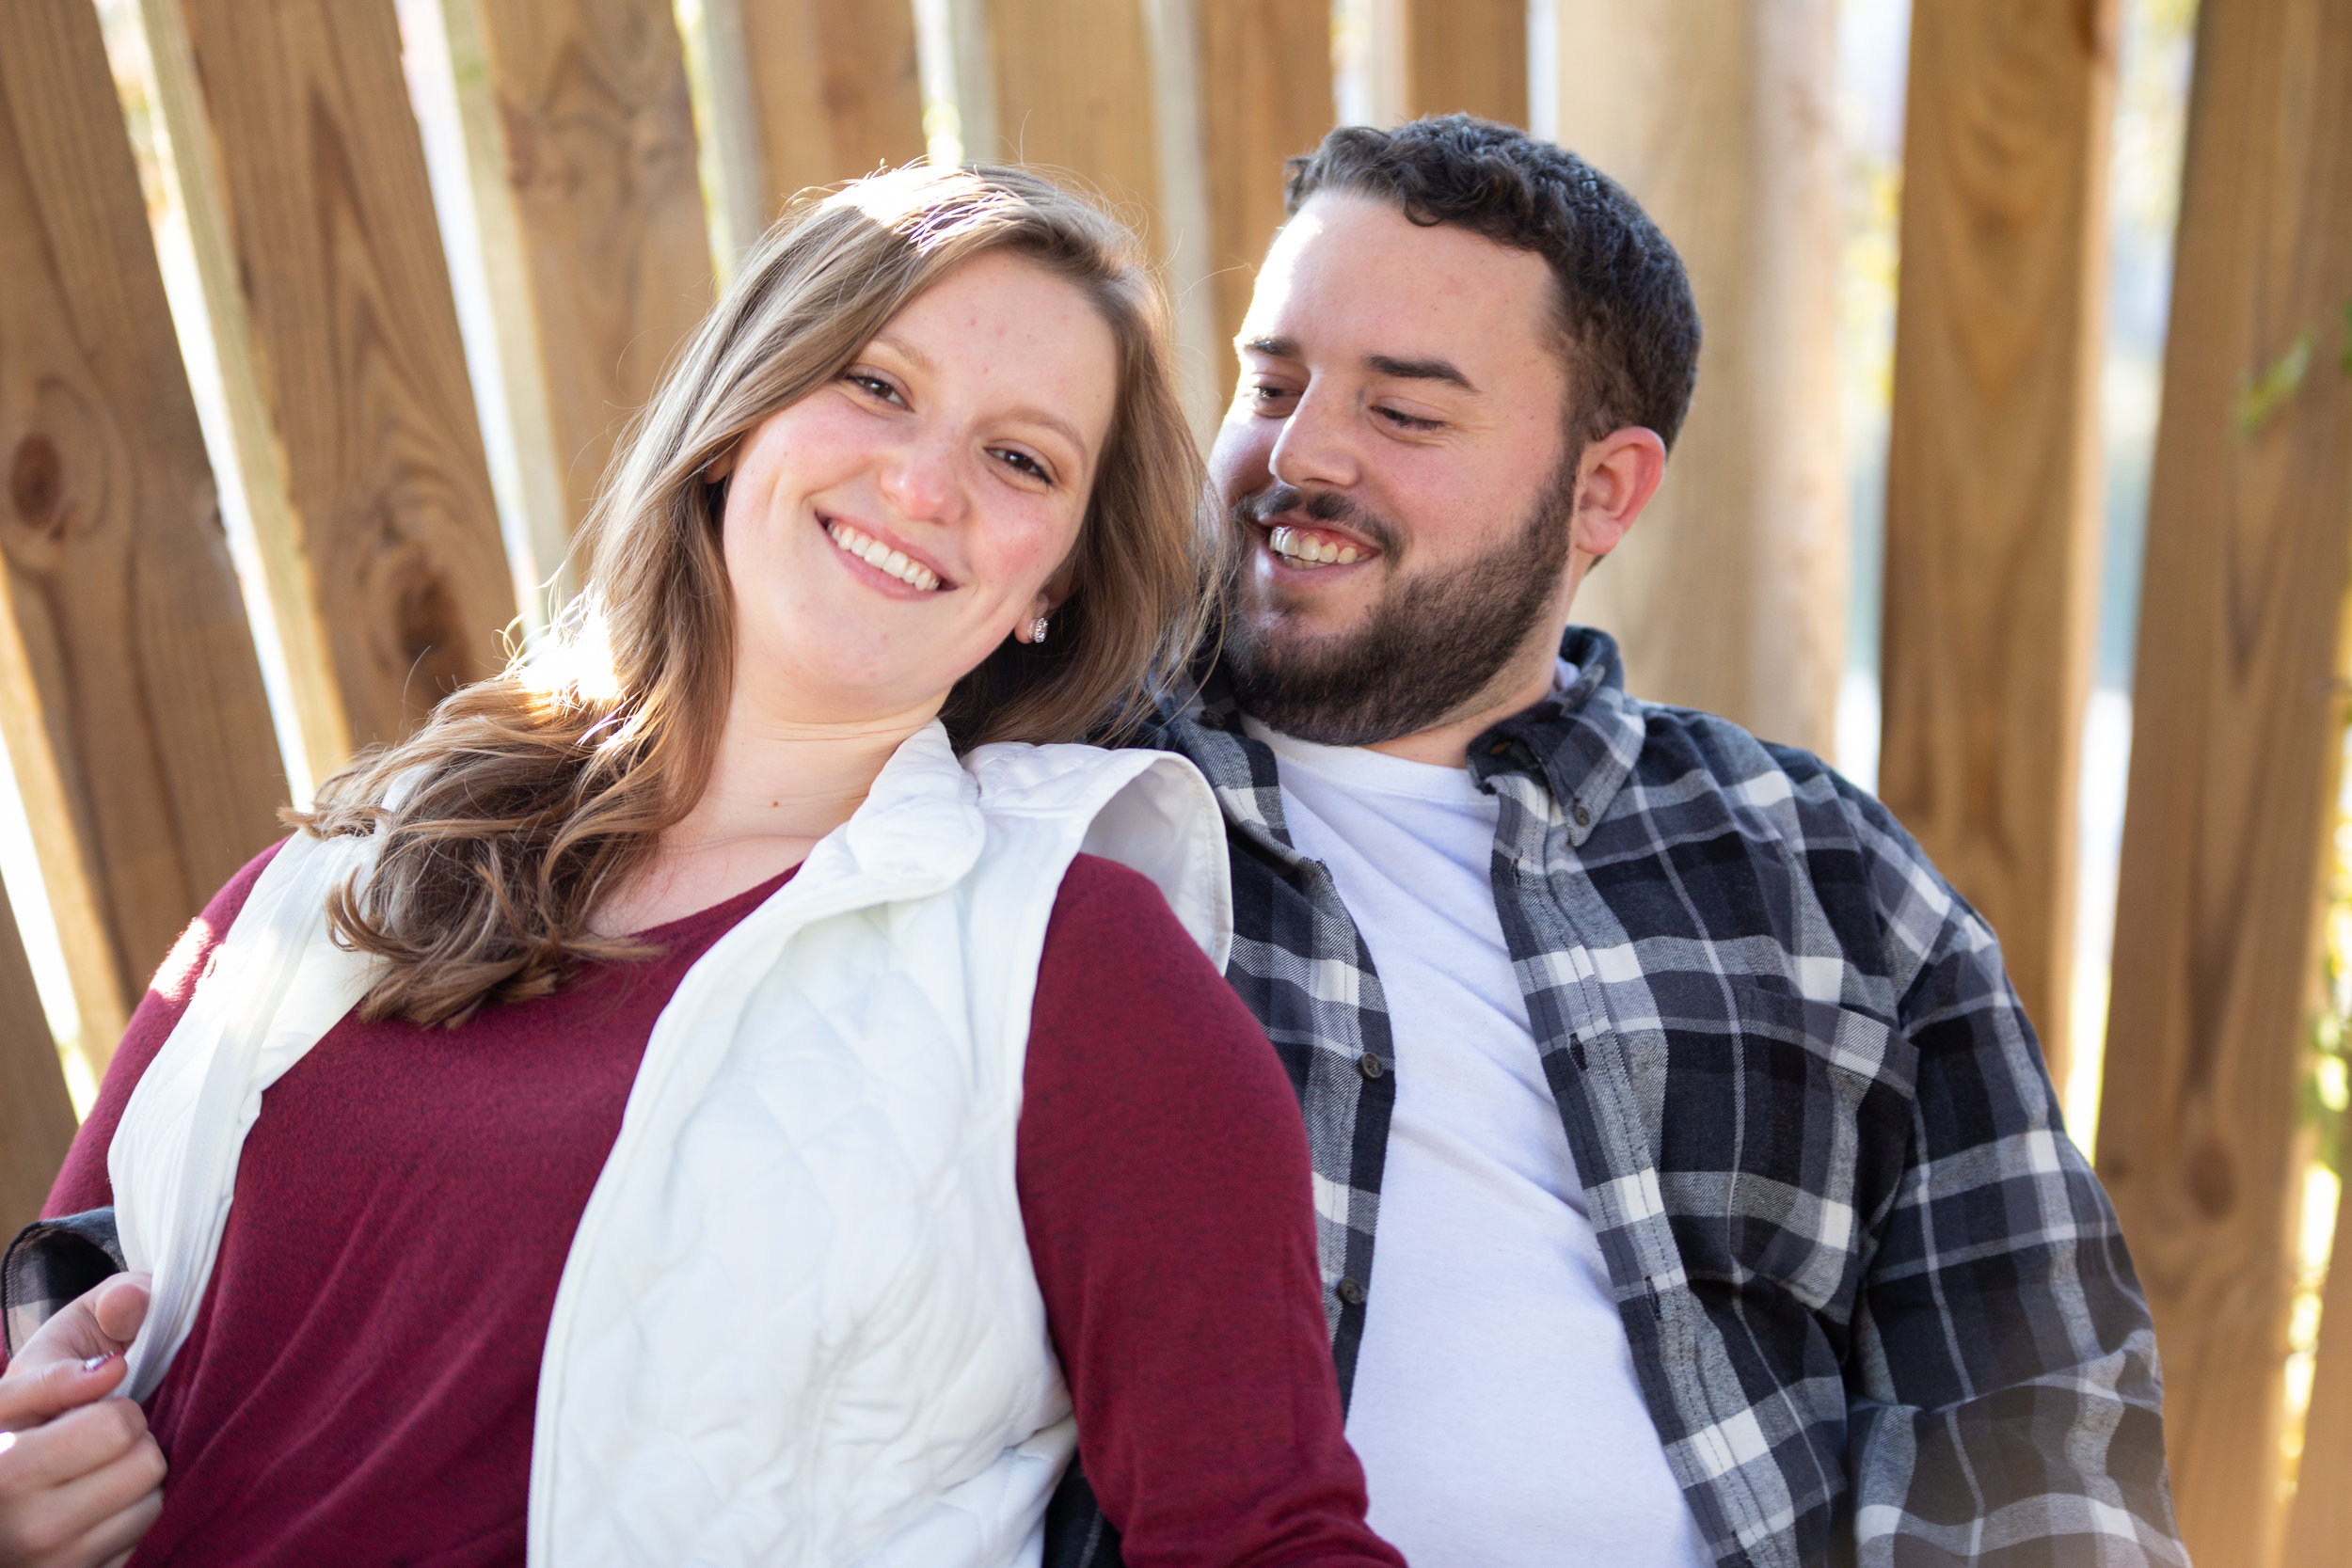 Fall-Vines-gaze-love-couple-shoot-photography-blacksburg-roanoke-love-lover-loving-engaged-wedding-Virginia-Tech-campus-slats-leaning-texture-smiling